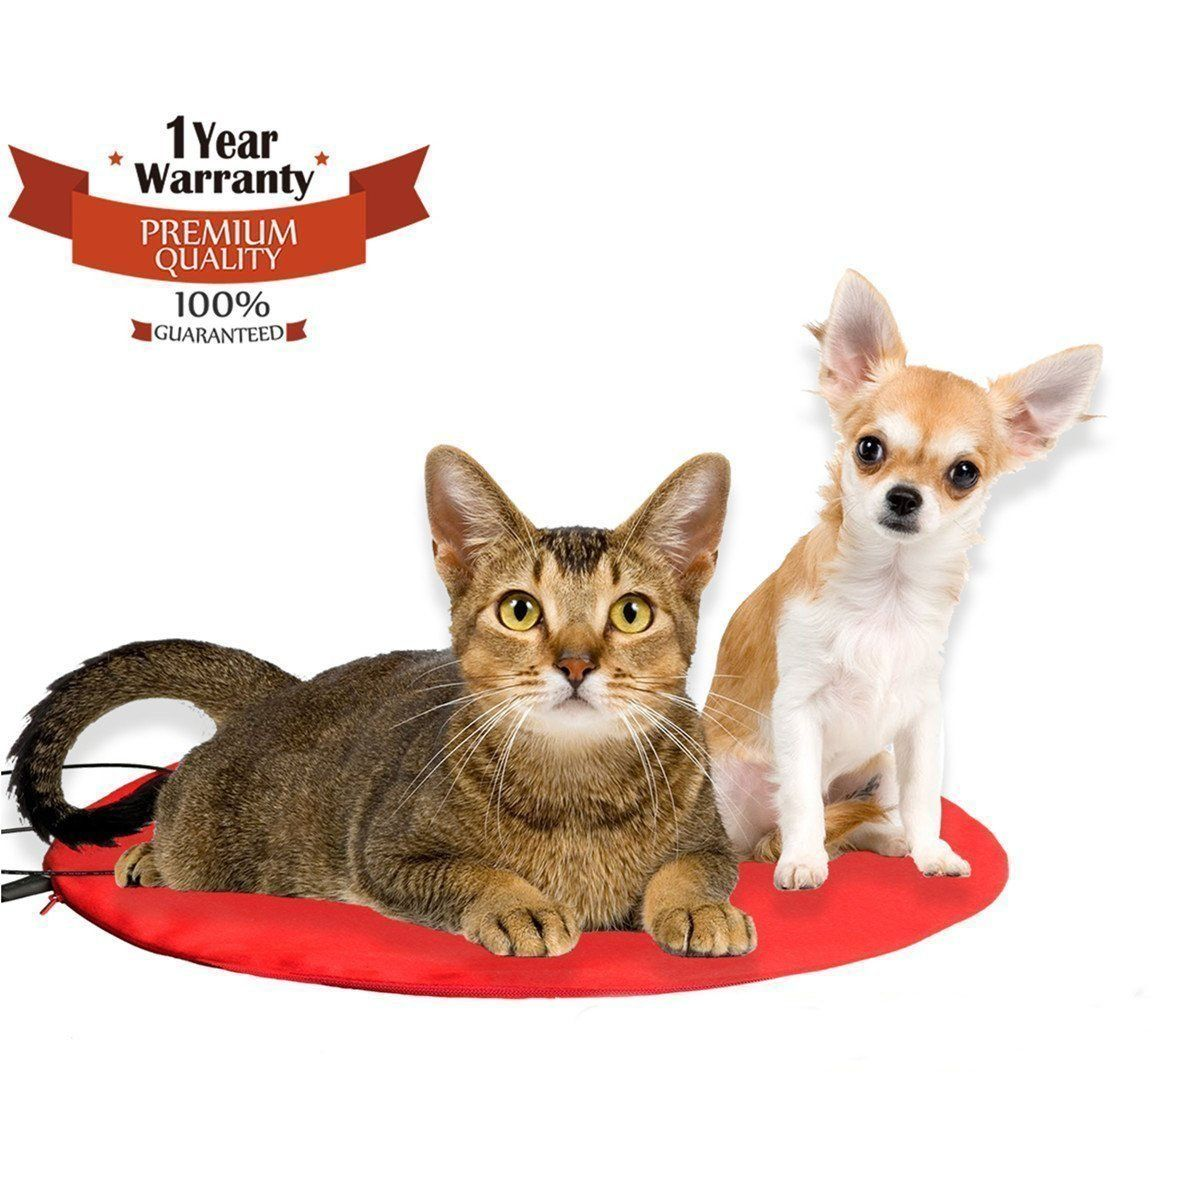 Heating Pet Bed ONEVER Electric Heating Pad for Dogs Cats